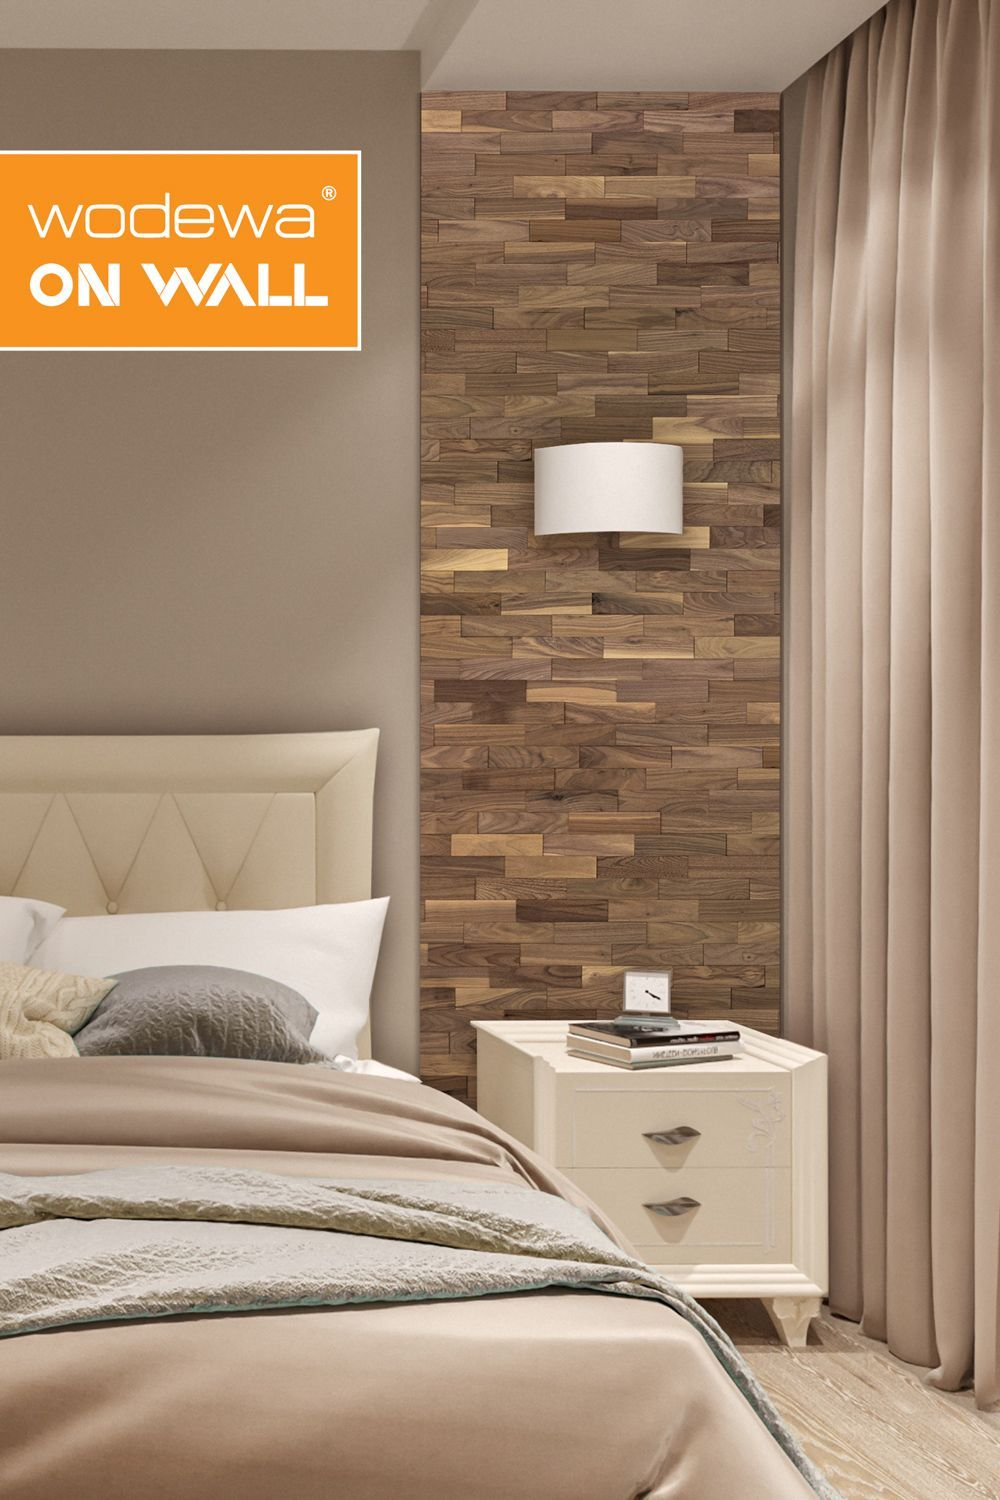 Wallcovering Wood Inside I I Bedroom In 2020 Home Room Design Interior Decorating Living Room Romantic Bedroom Decor